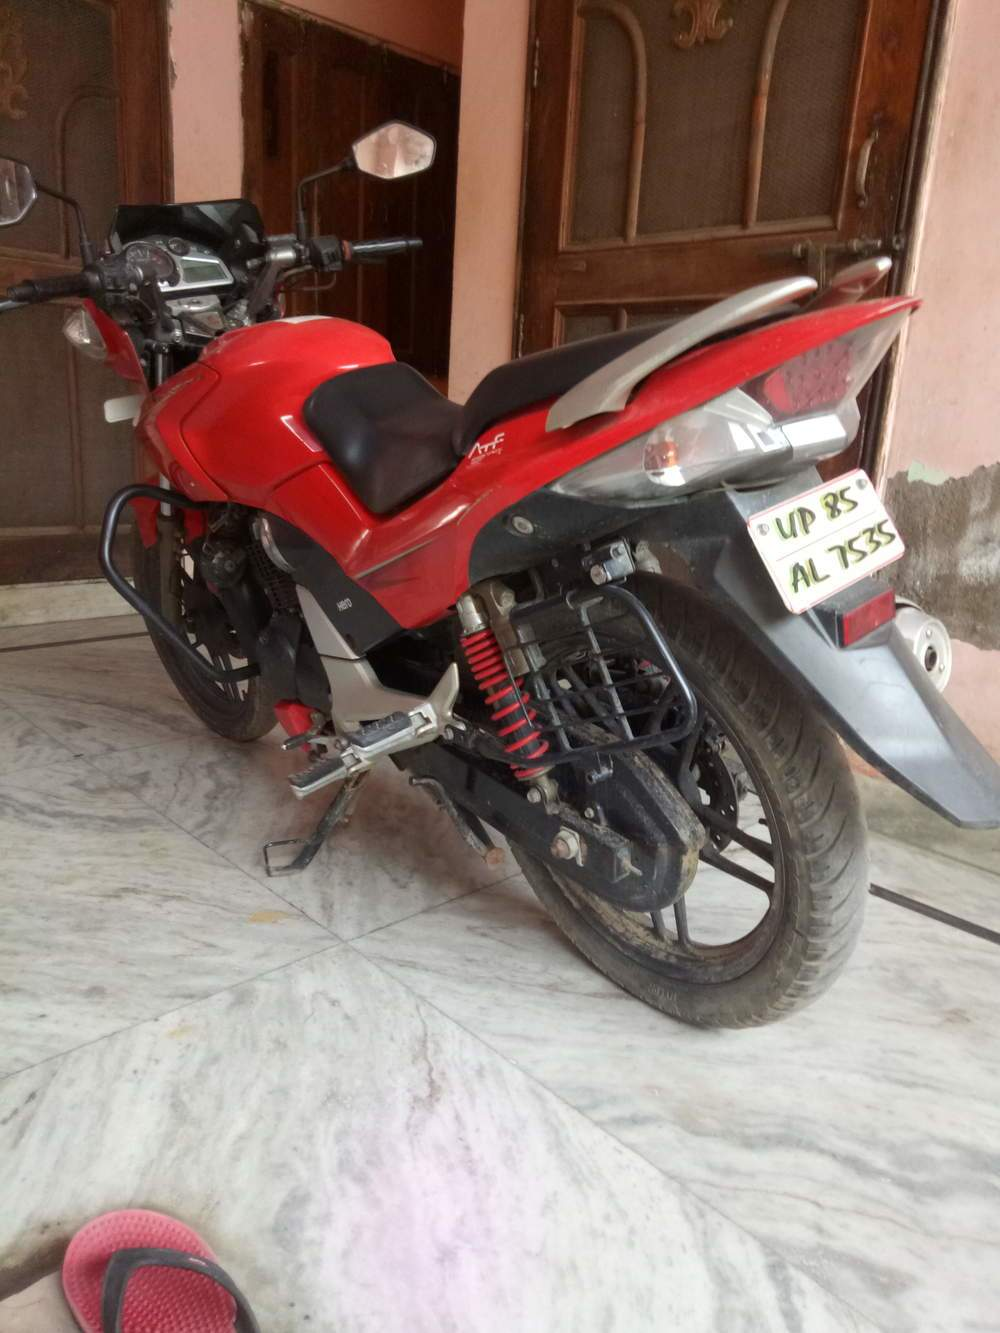 Hero Xtreme Rear View